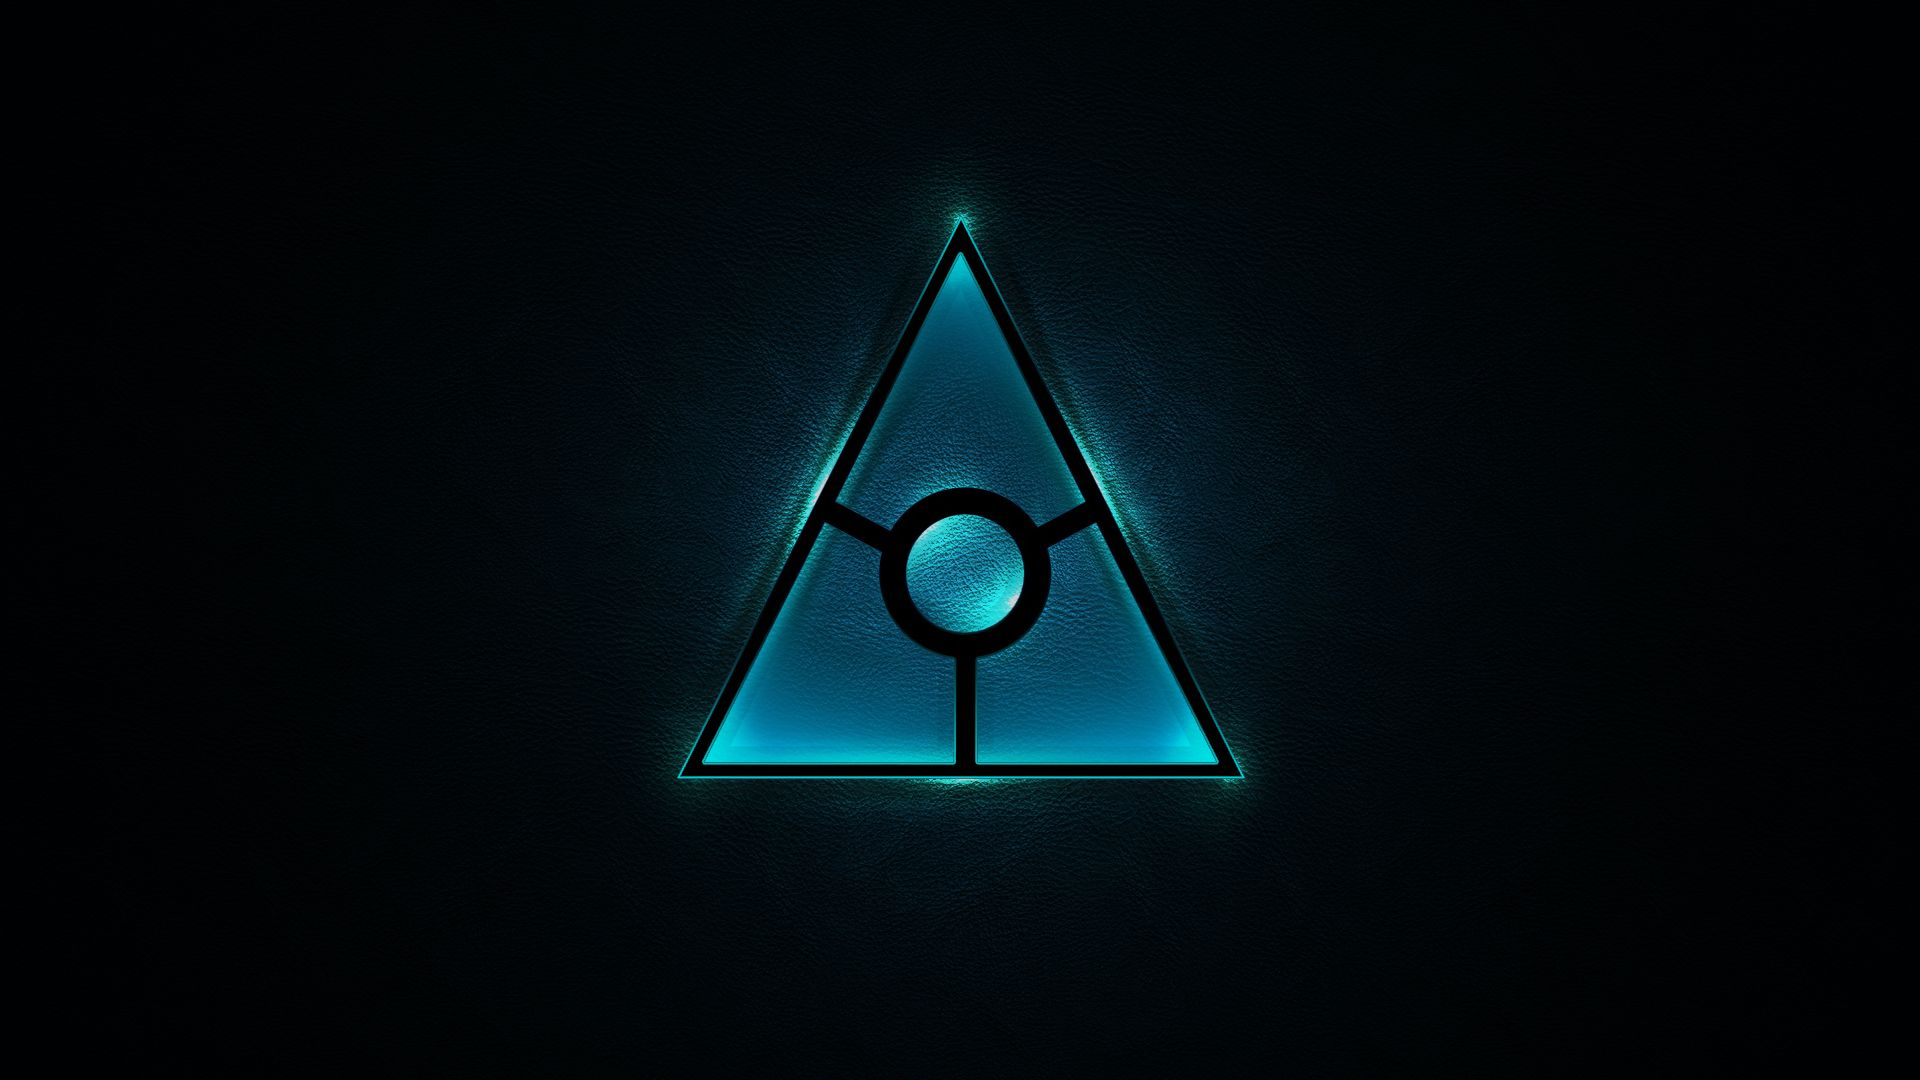 Logo blue illuminati faction the secret world logo in dark logo blue illuminati faction the secret world logo in dark backgrounds wallpaper illuminati cool symbol dark biocorpaavc